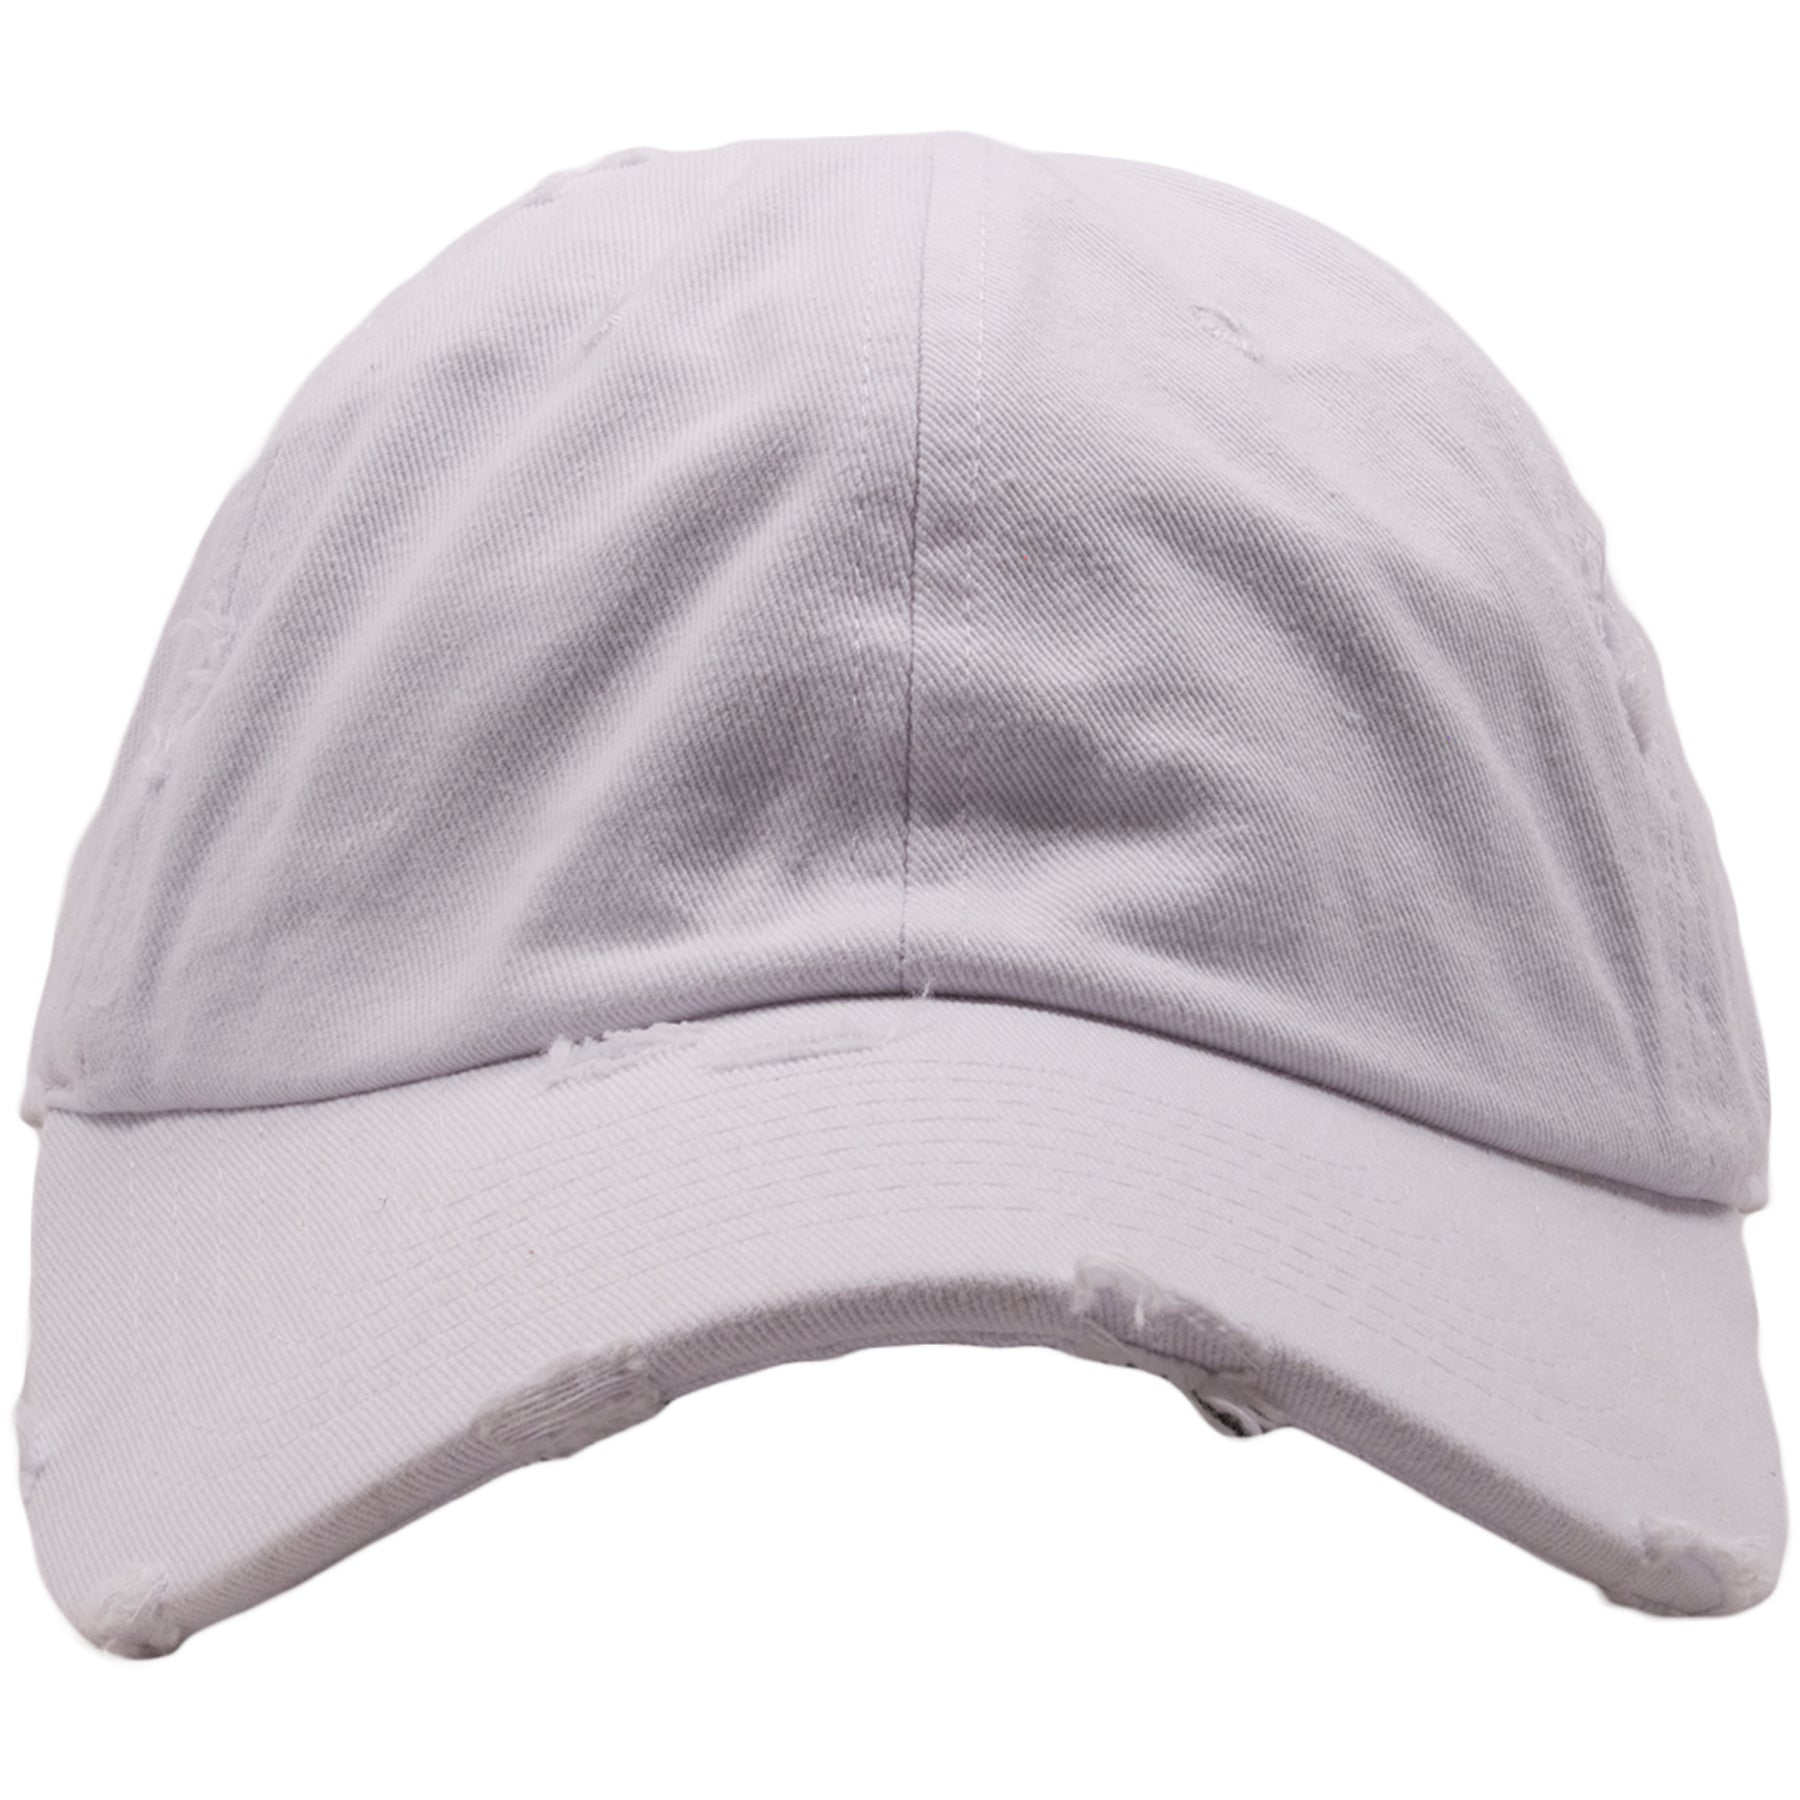 New Vintage Year Blank Dad Hat Cotton Adjustable Baseball Cap